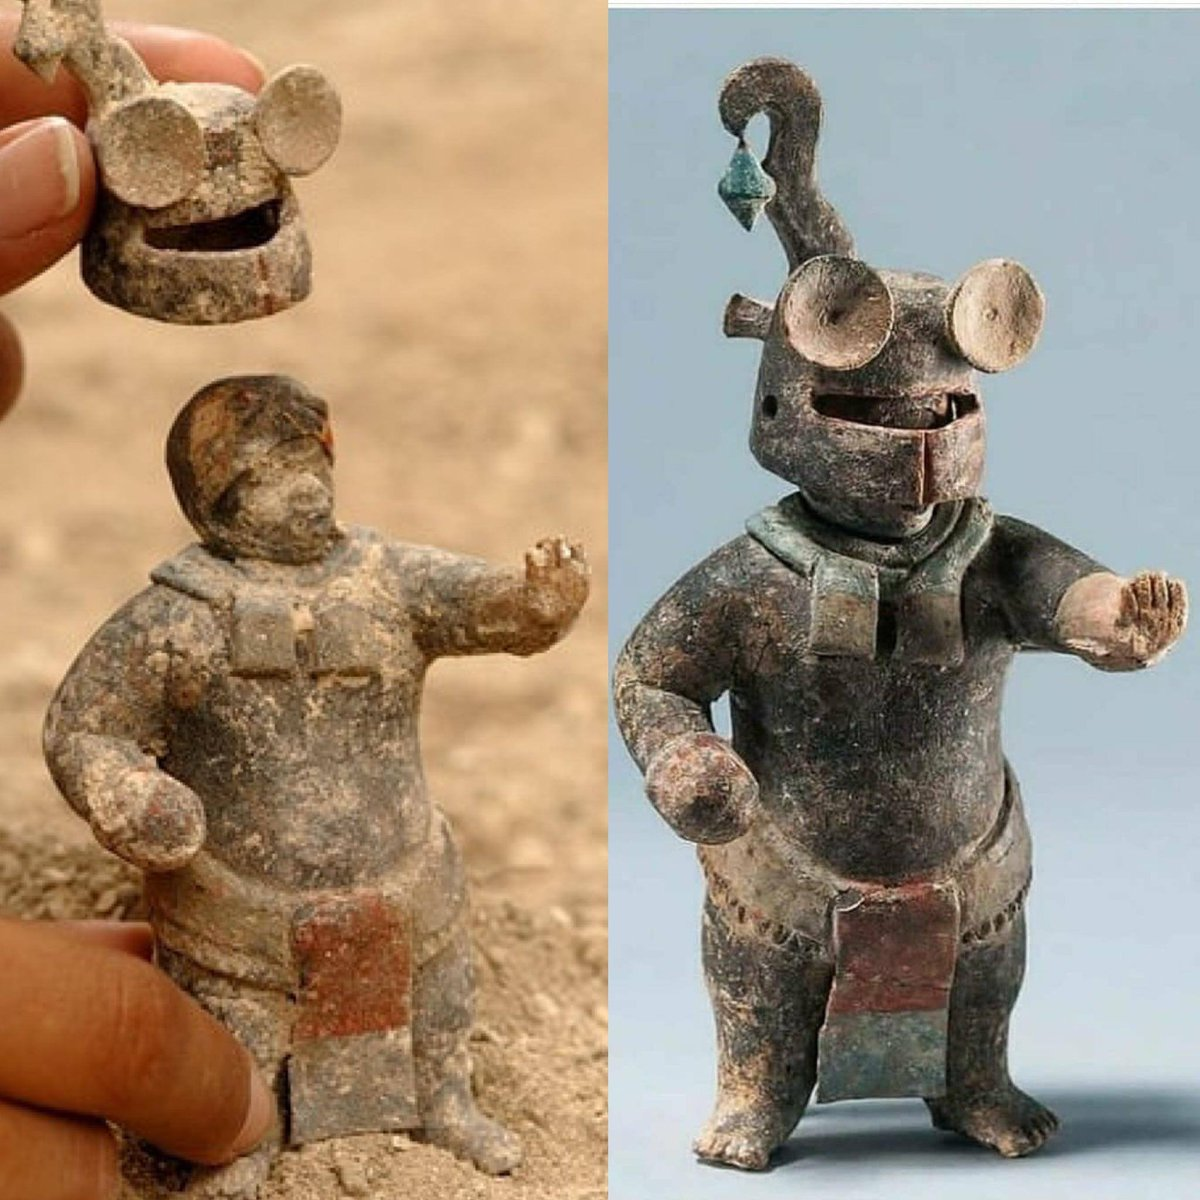 1,500-year-old Ceramic Maya Figurine with Removable Helmet. Guatemala.  Action figure has been around for a long long time https://t.co/1LTCykjqCE